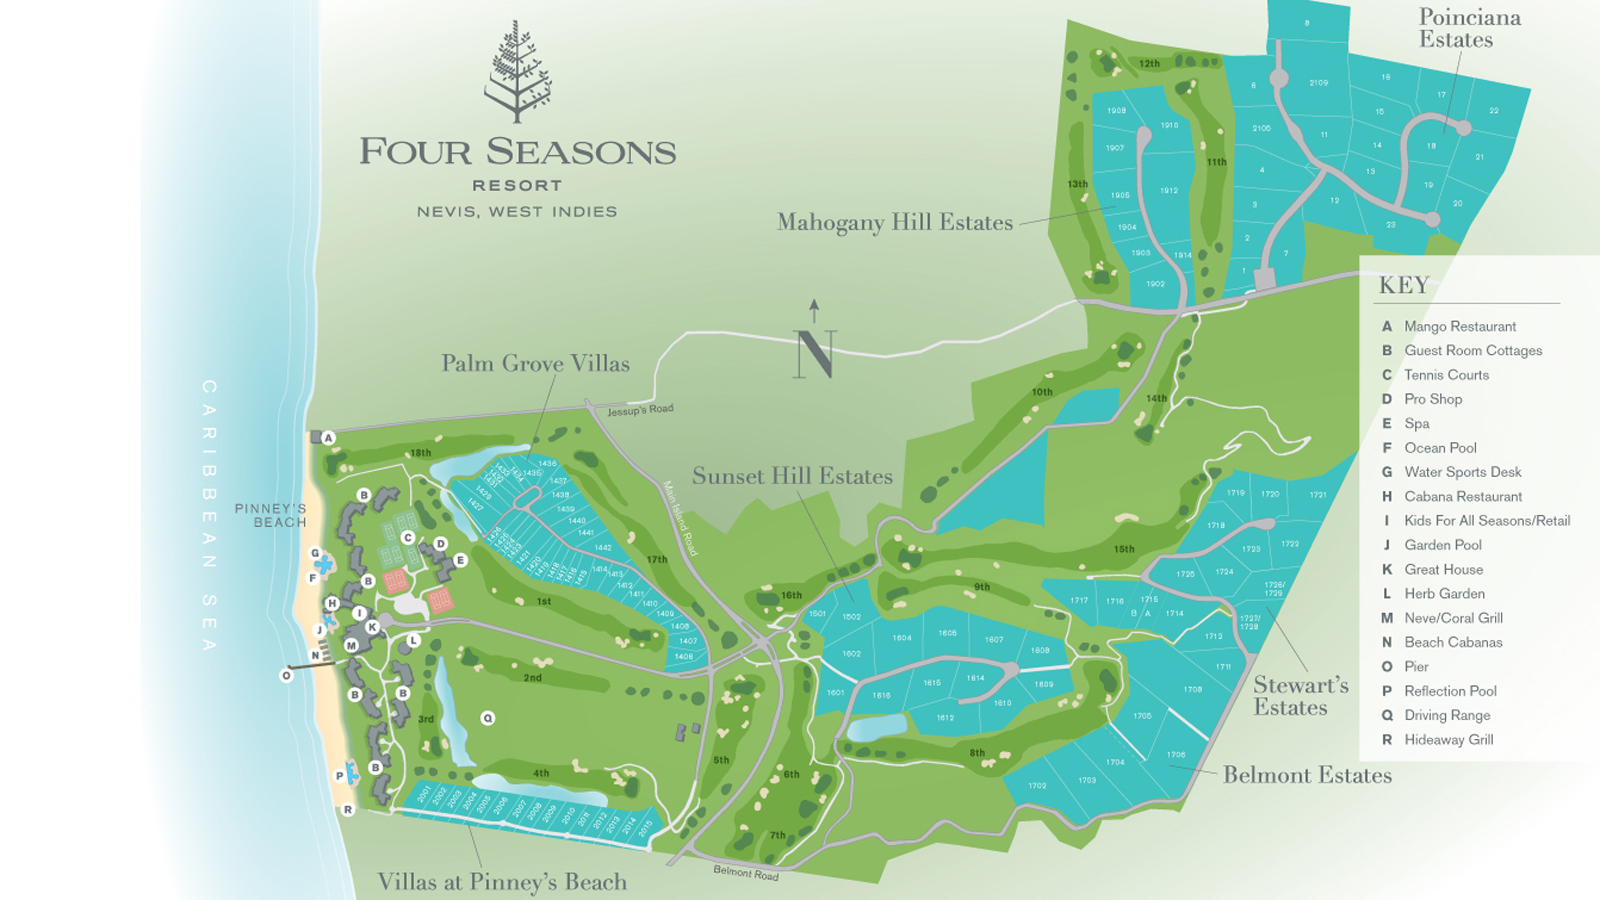 Nevis St Kitts Resort Map Caribbean Four Seasons Resort Nevis